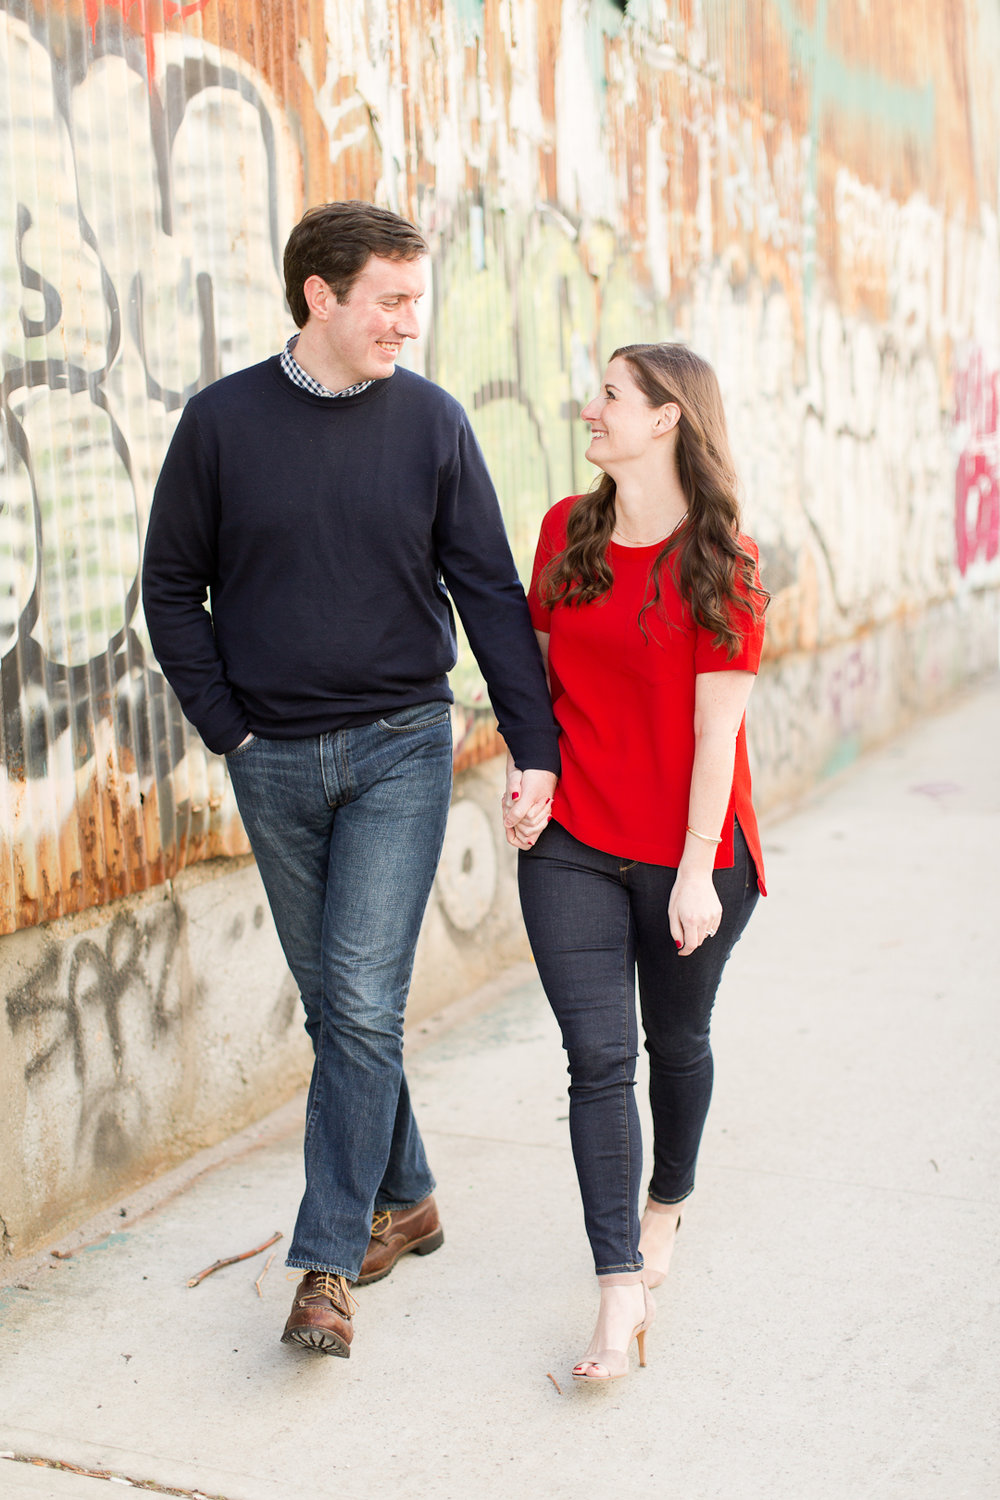 Melissa Kruse Photography - Tess & Brendan Engagement Photos-40.jpg